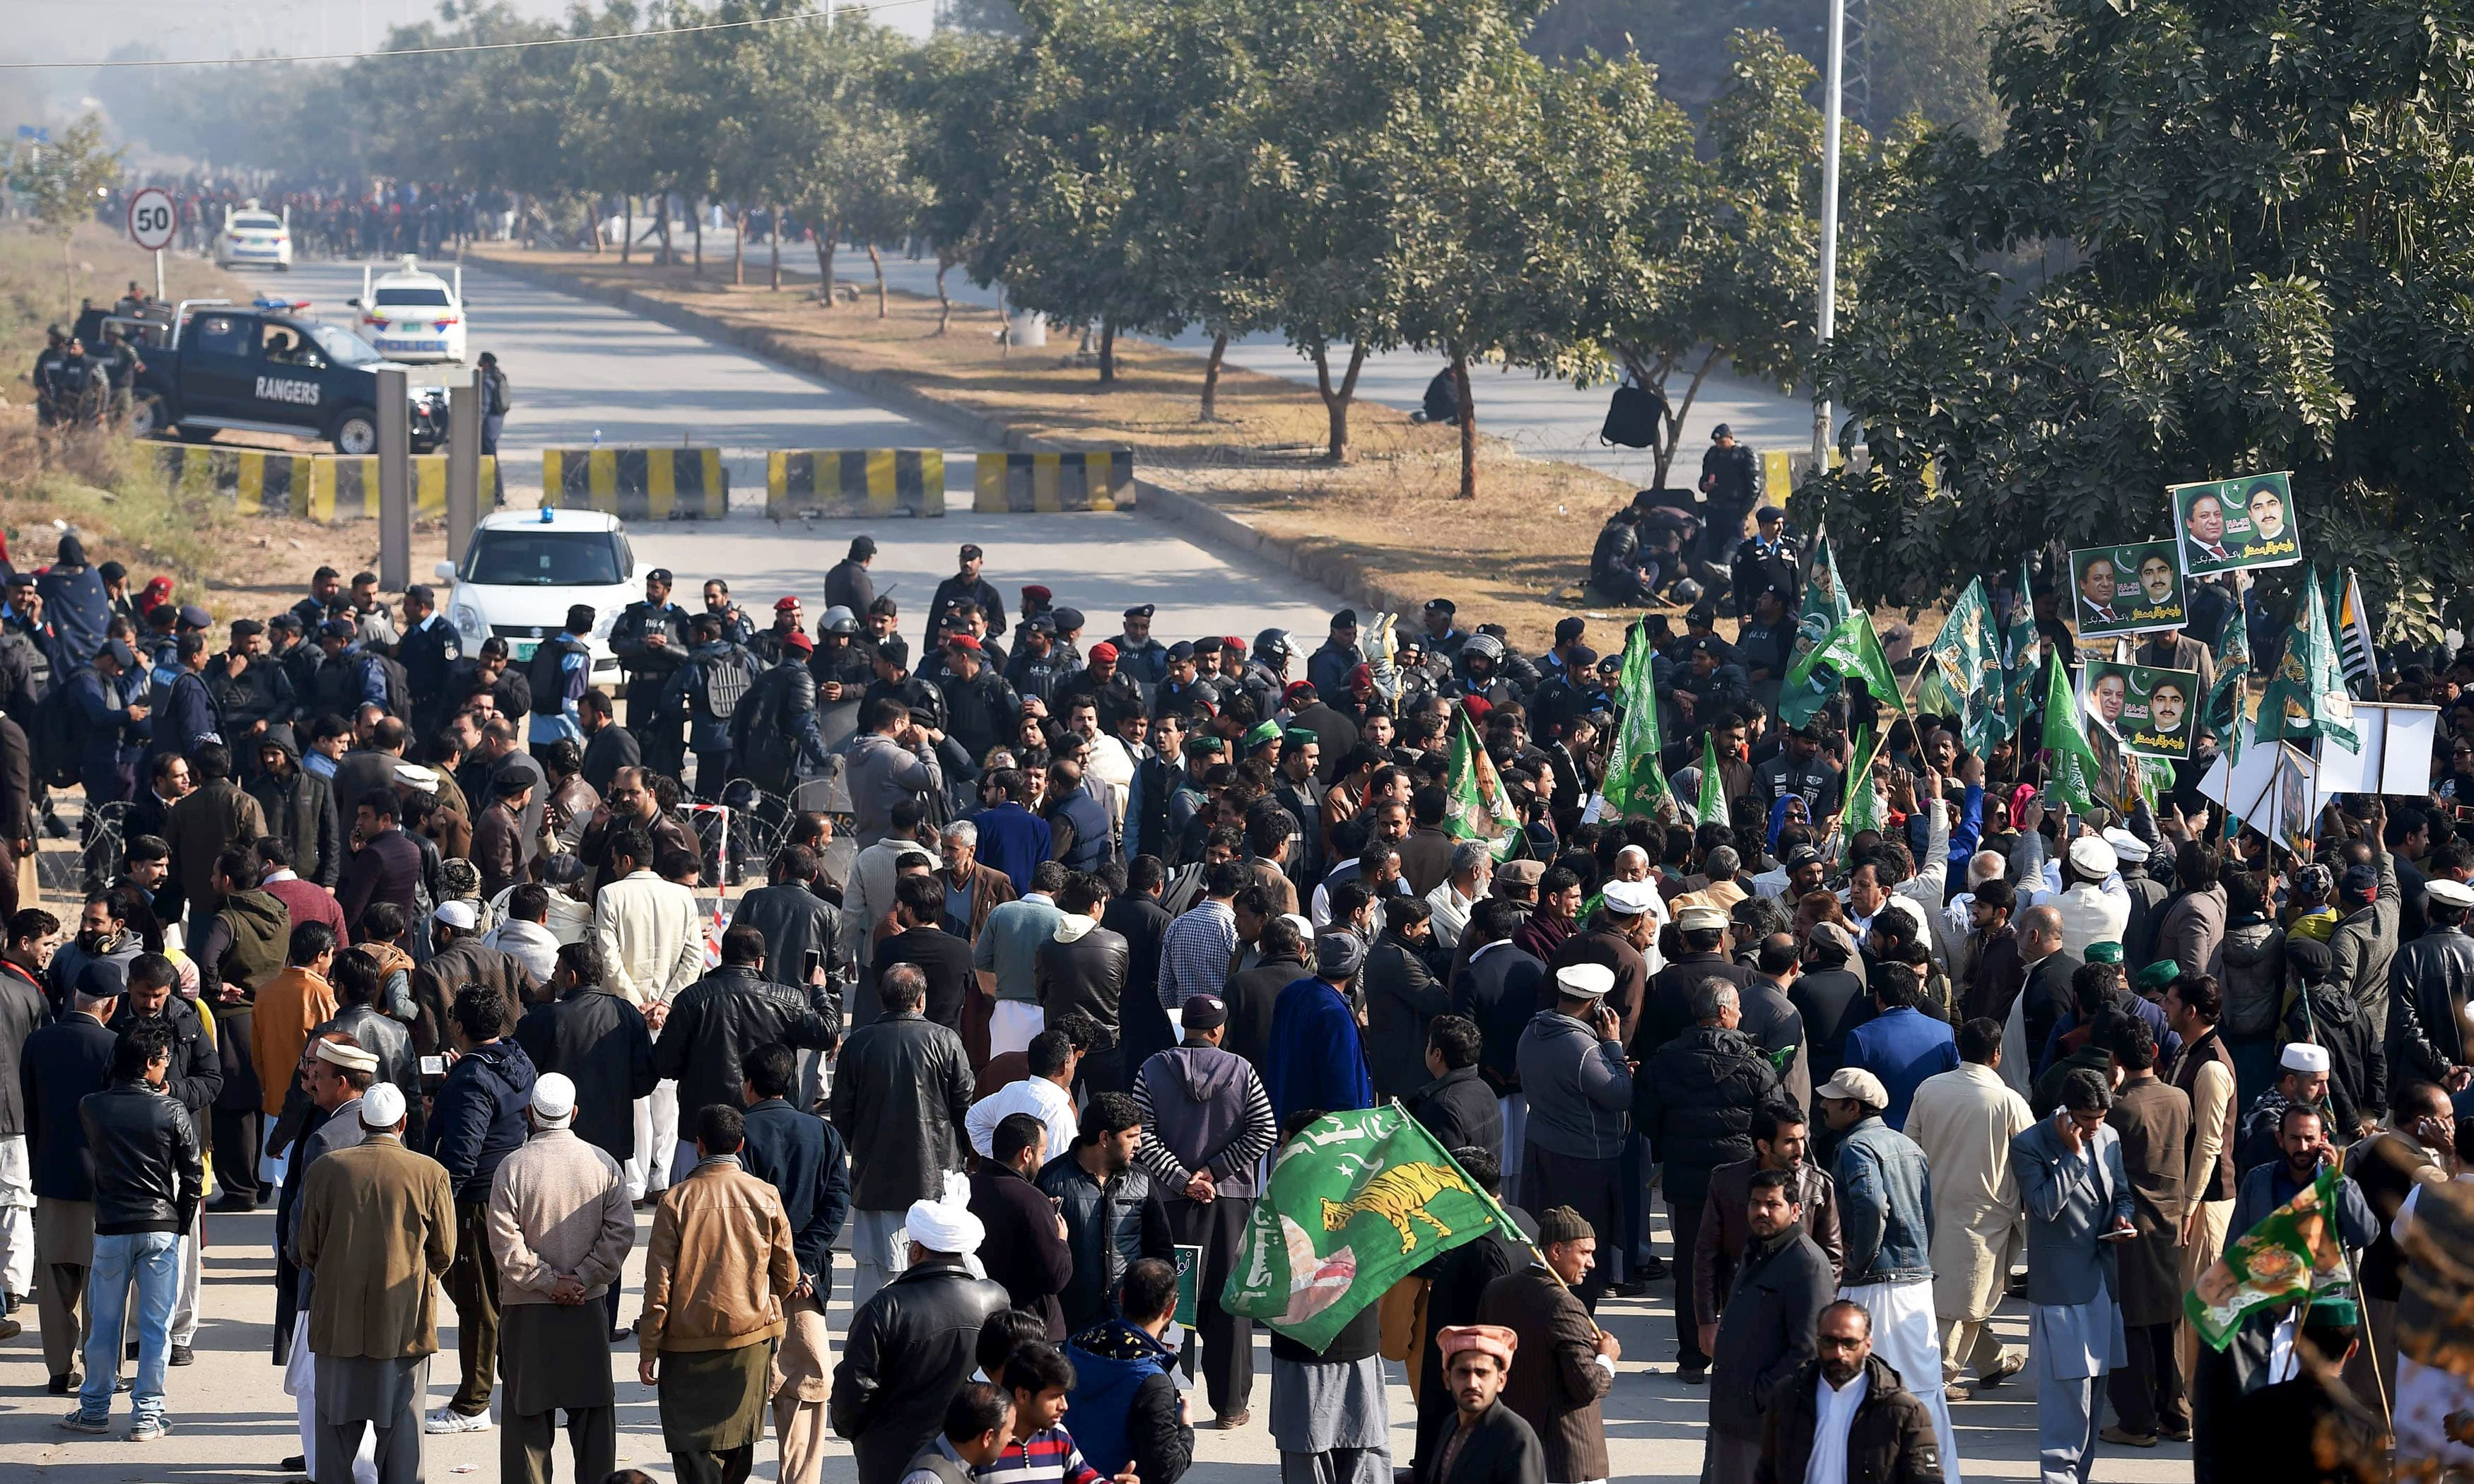 PML-N supporters gather outside the anti-corruption court in Islamabad. —AFP